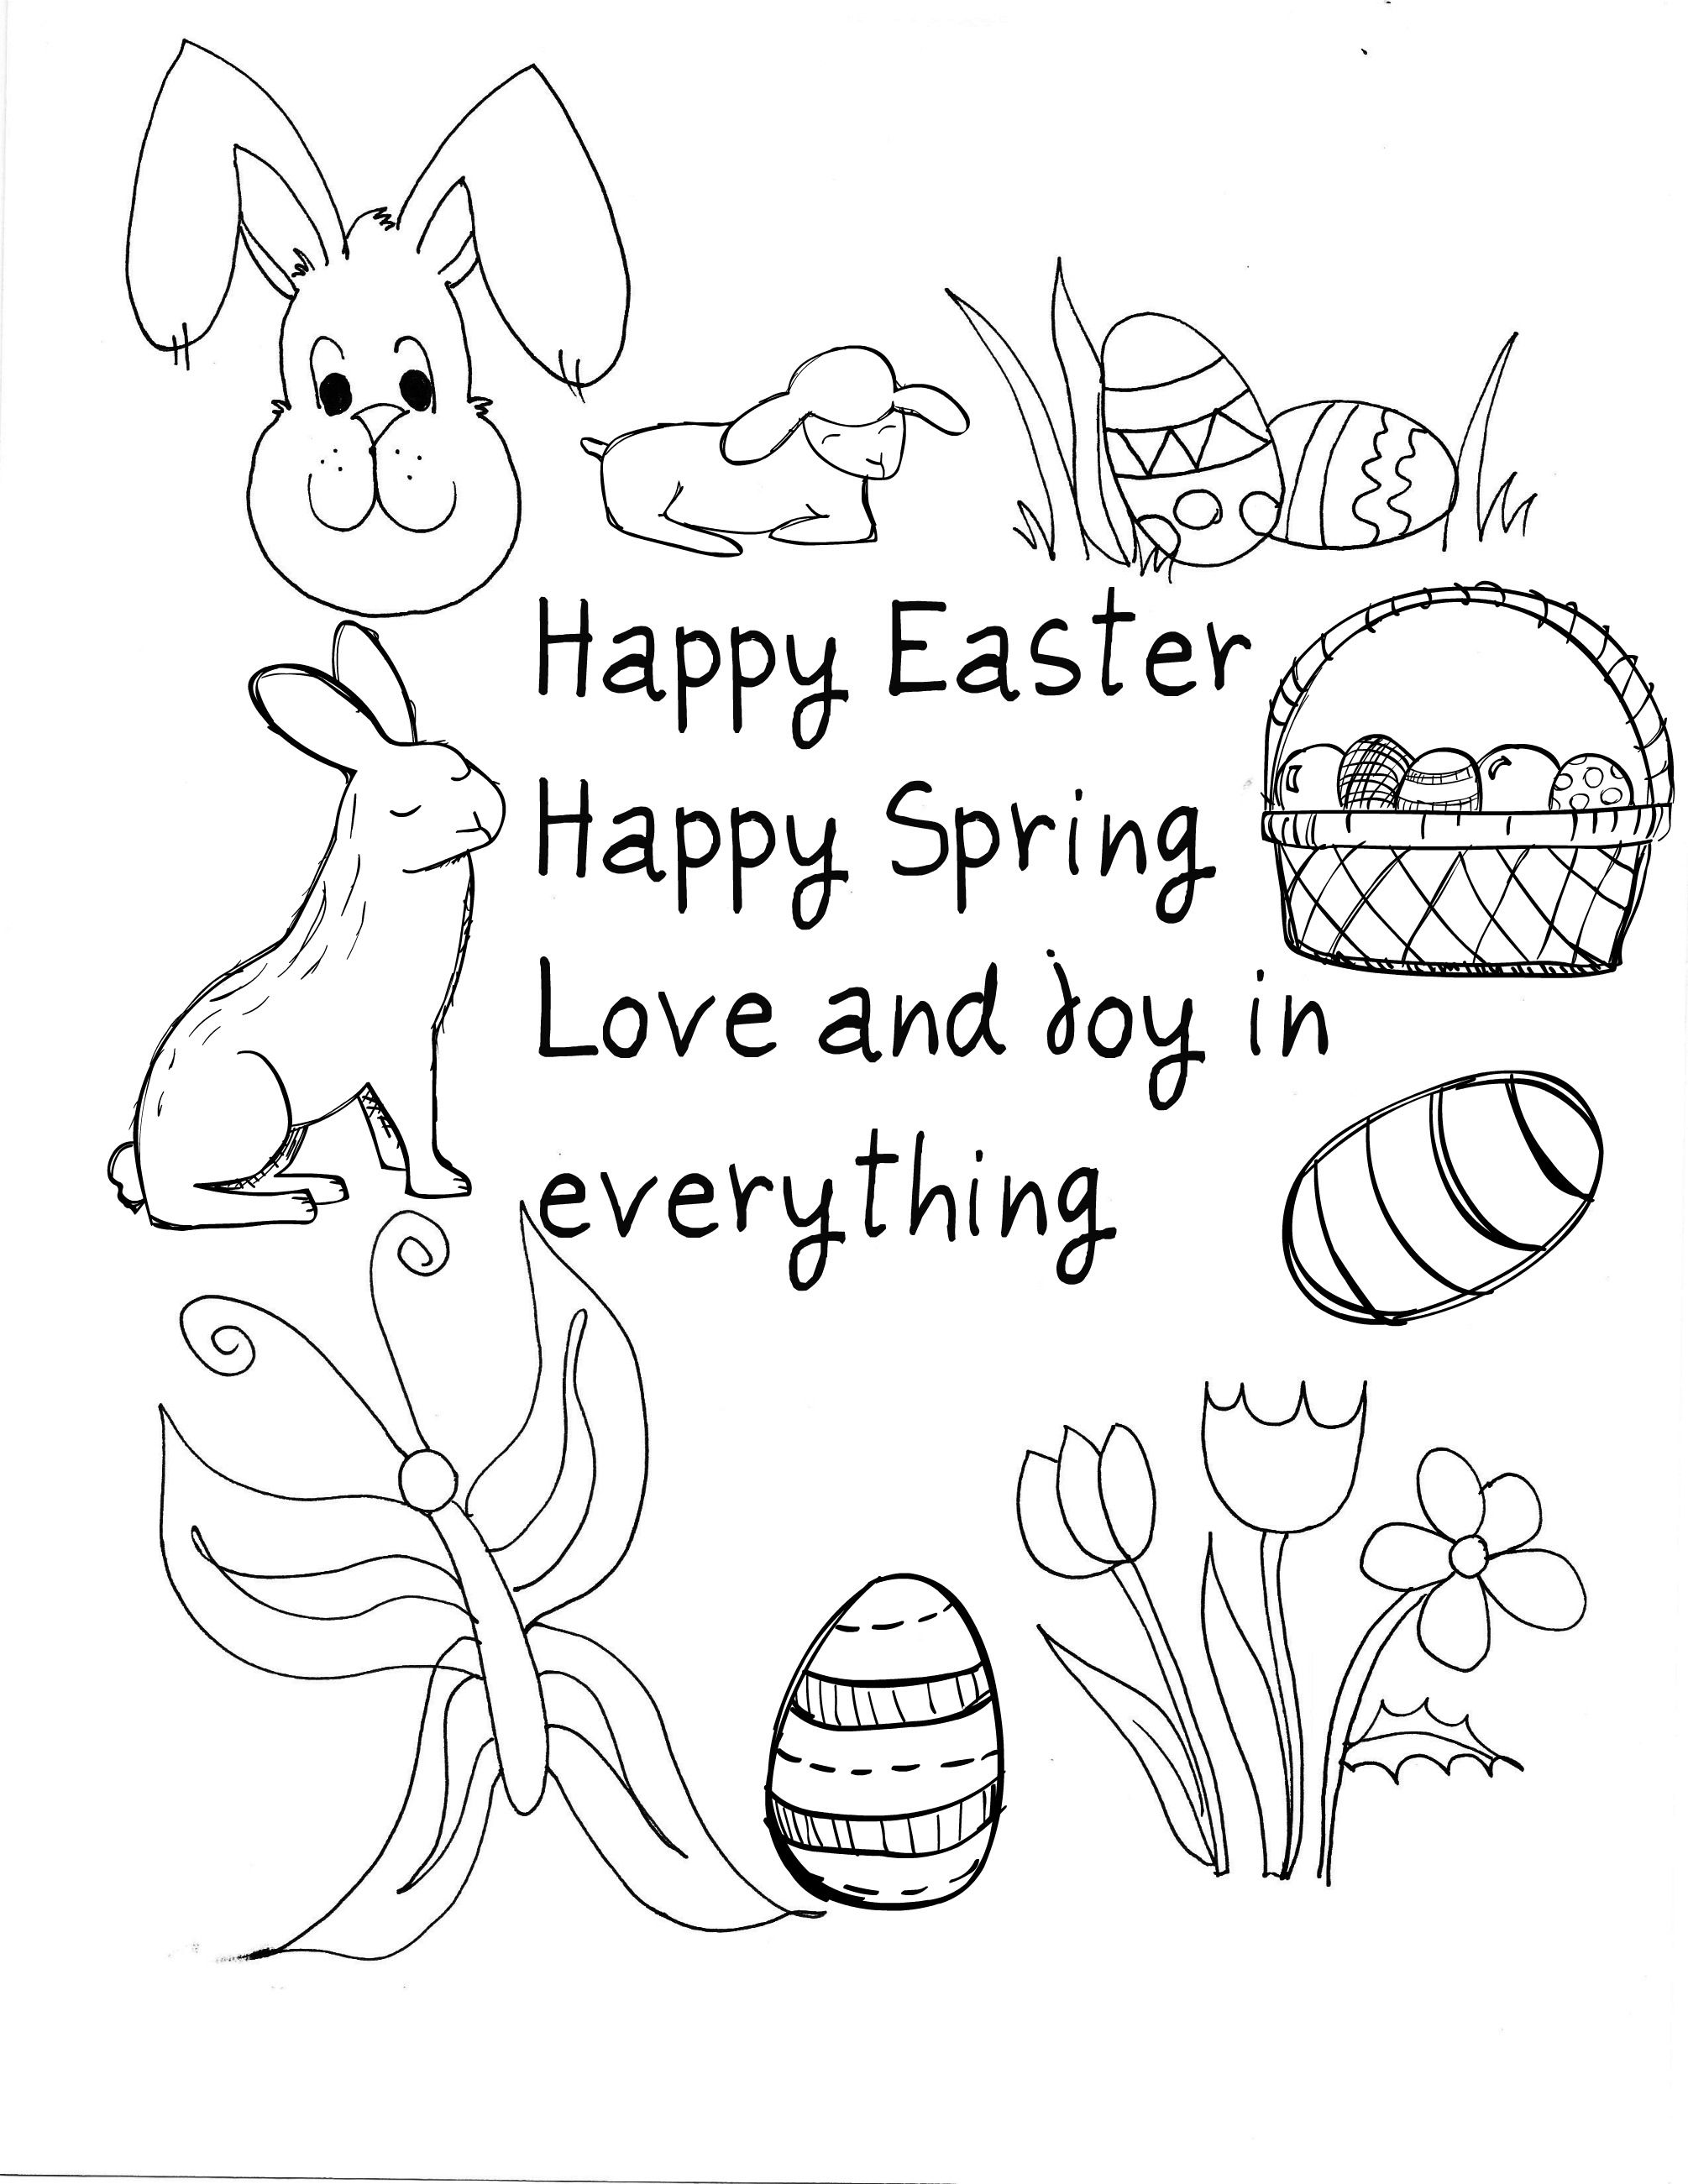 free easter and spring coloring pages archives ketaros com